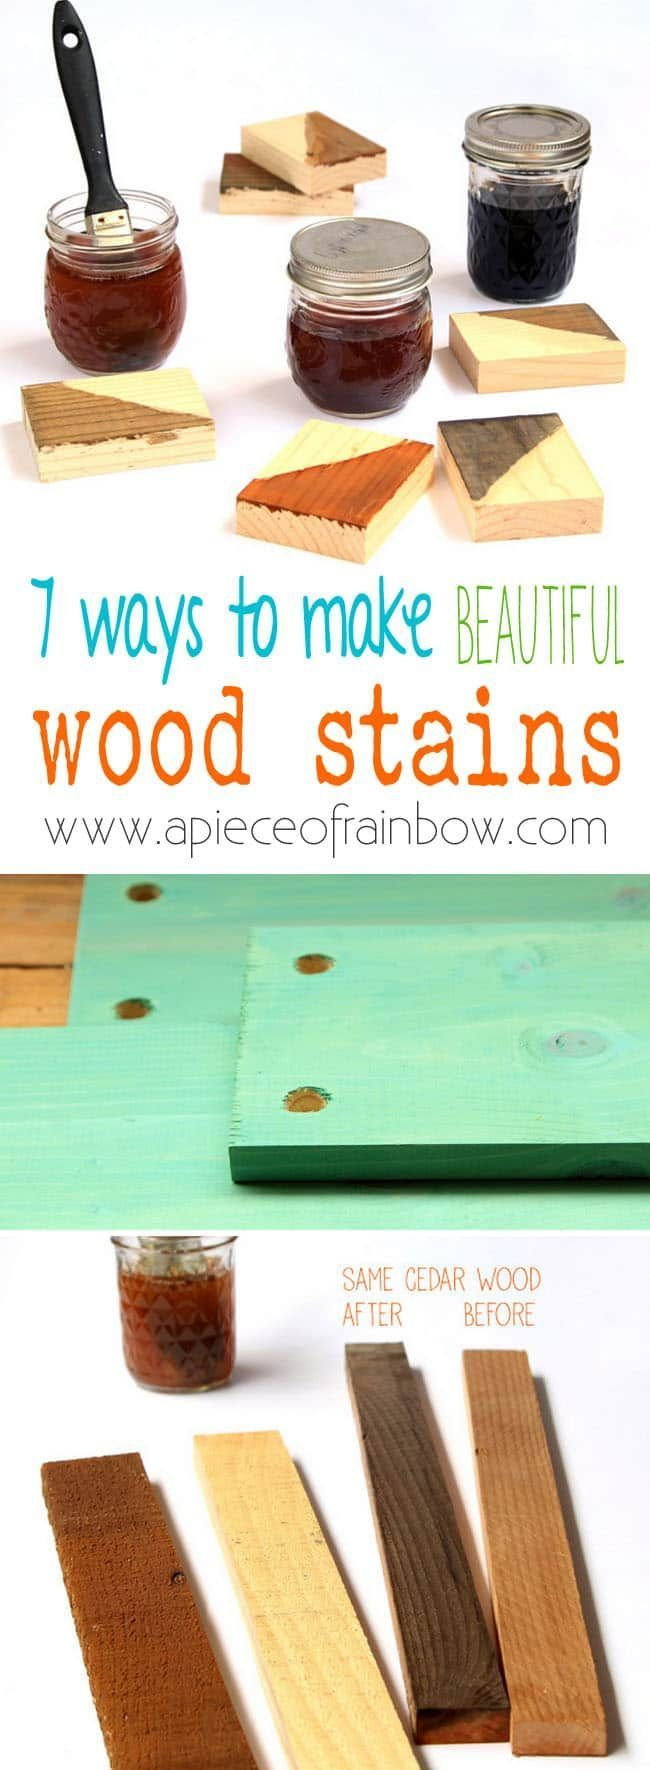 7 ways to make wood stain from natural household materials ...